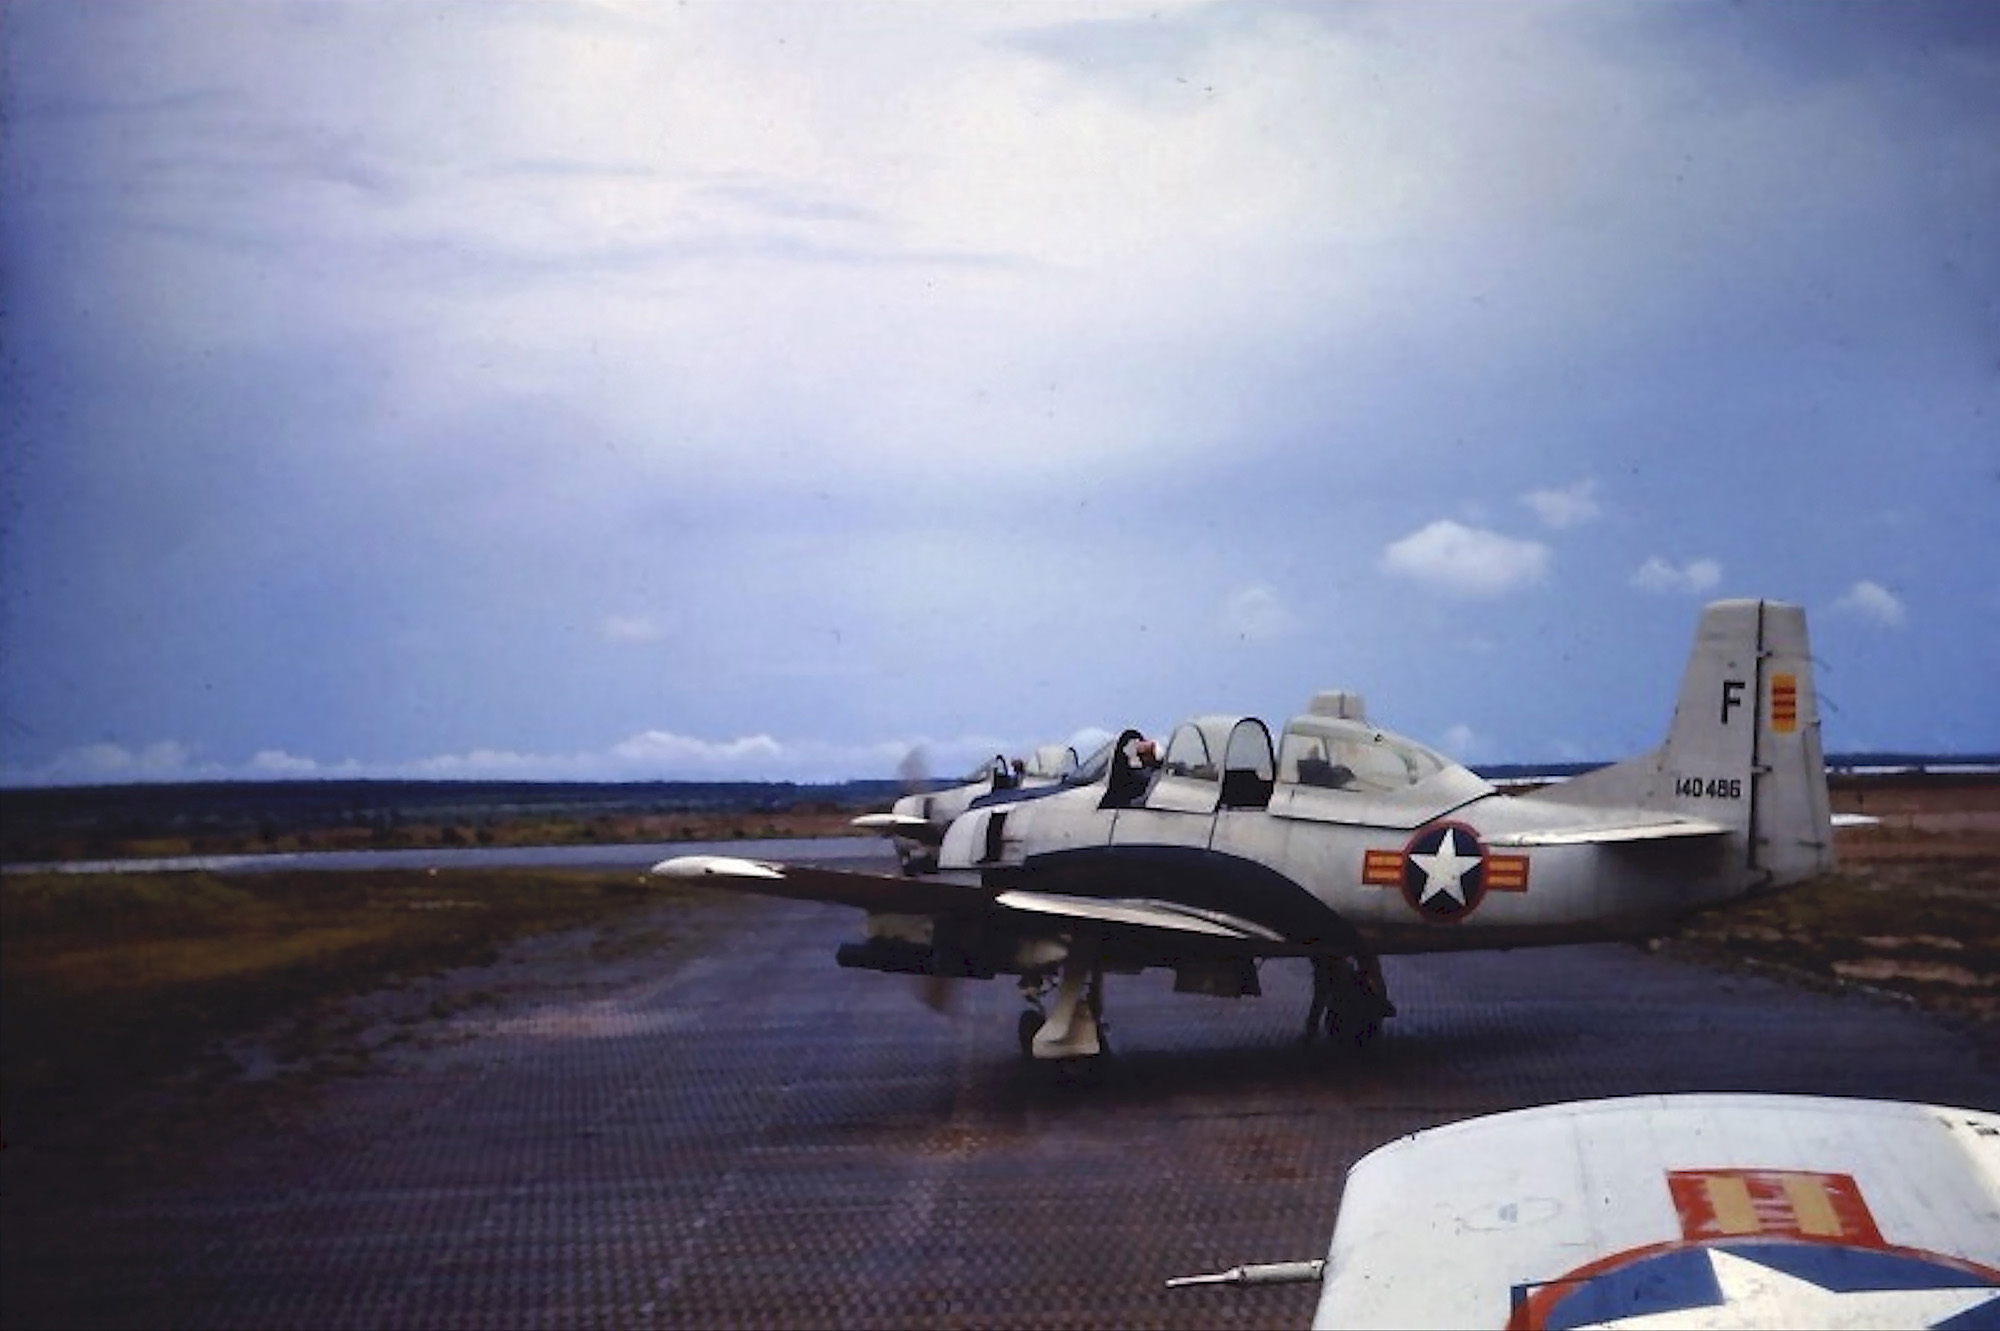 The Air Force Enters the Vietnam War - Air Force Magazine